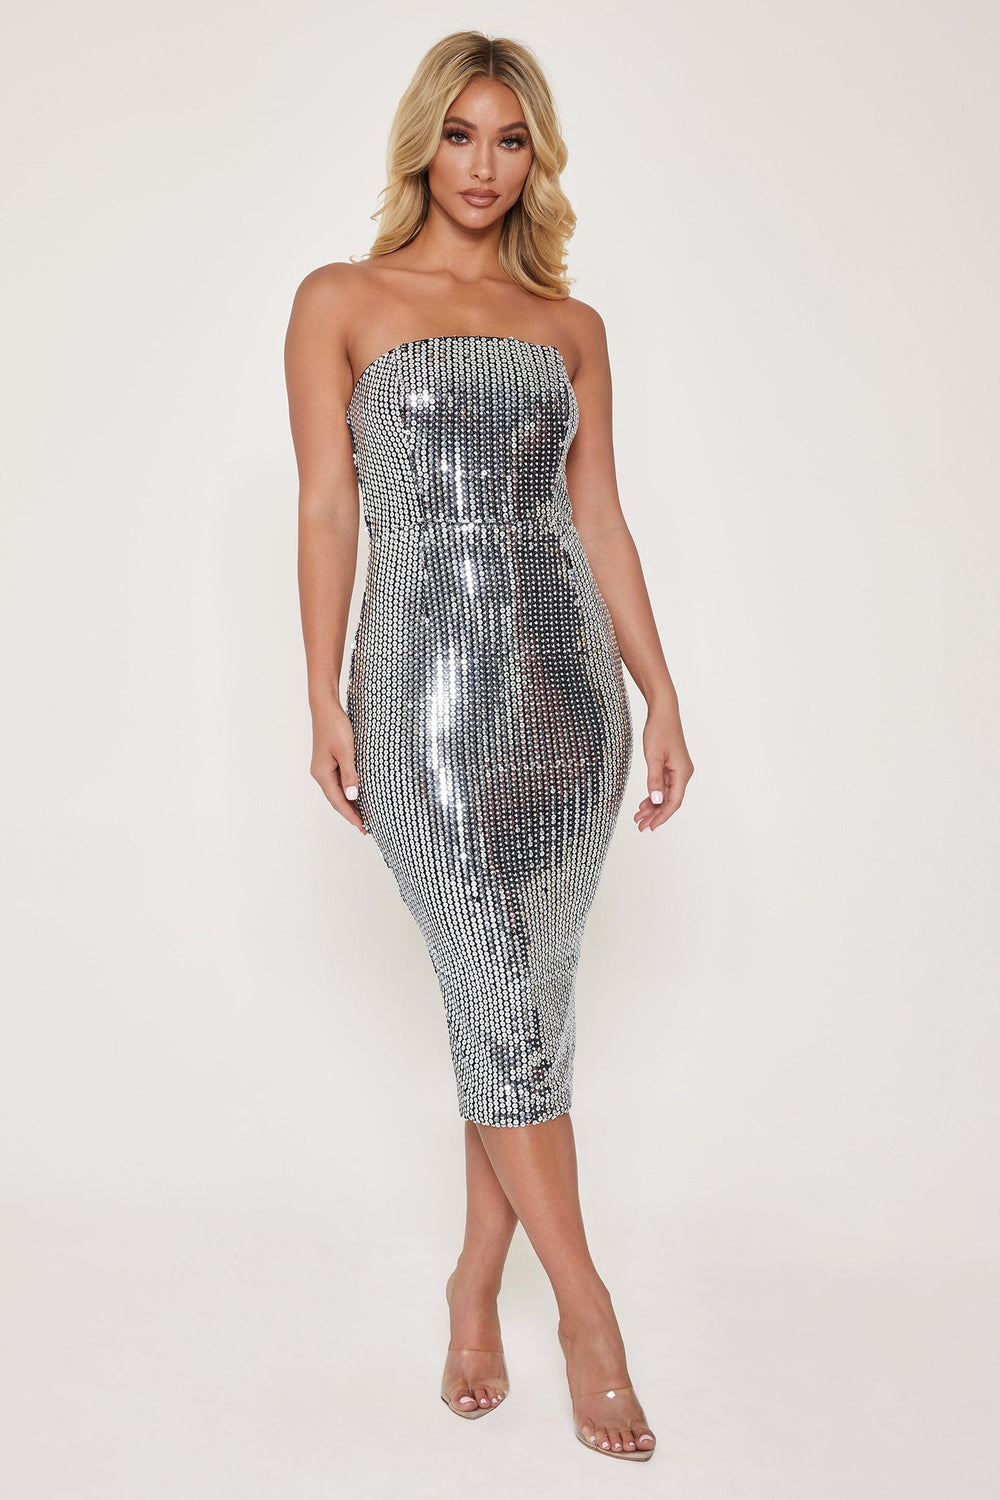 Nikki Mirror Sequin Strapless Dress - Silver - MESHKI ?id=12803954245707